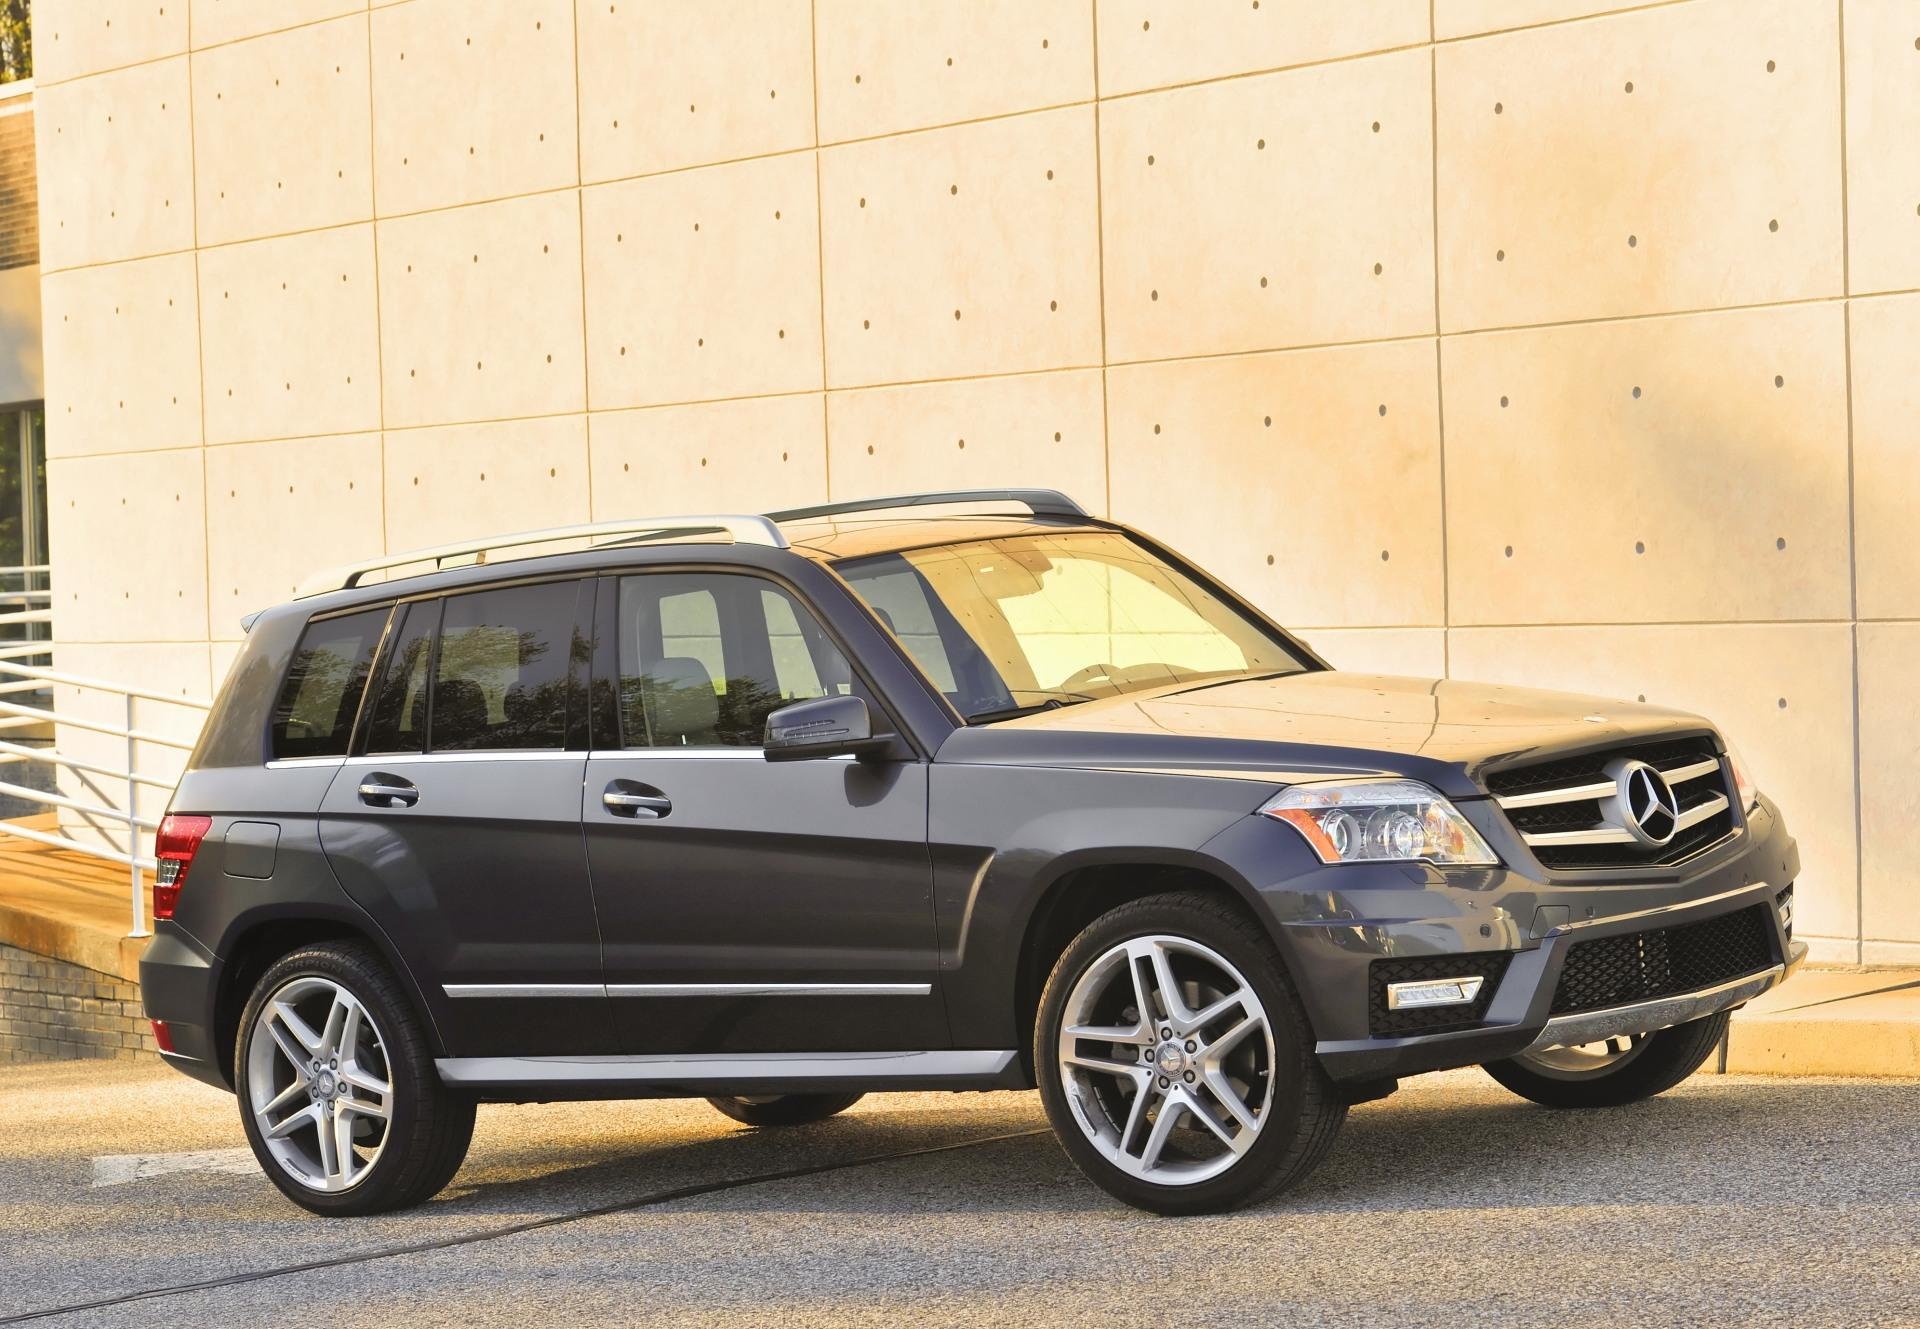 2011 mercedes benz glk class news and information for 2010 mercedes benz glk 350 recalls